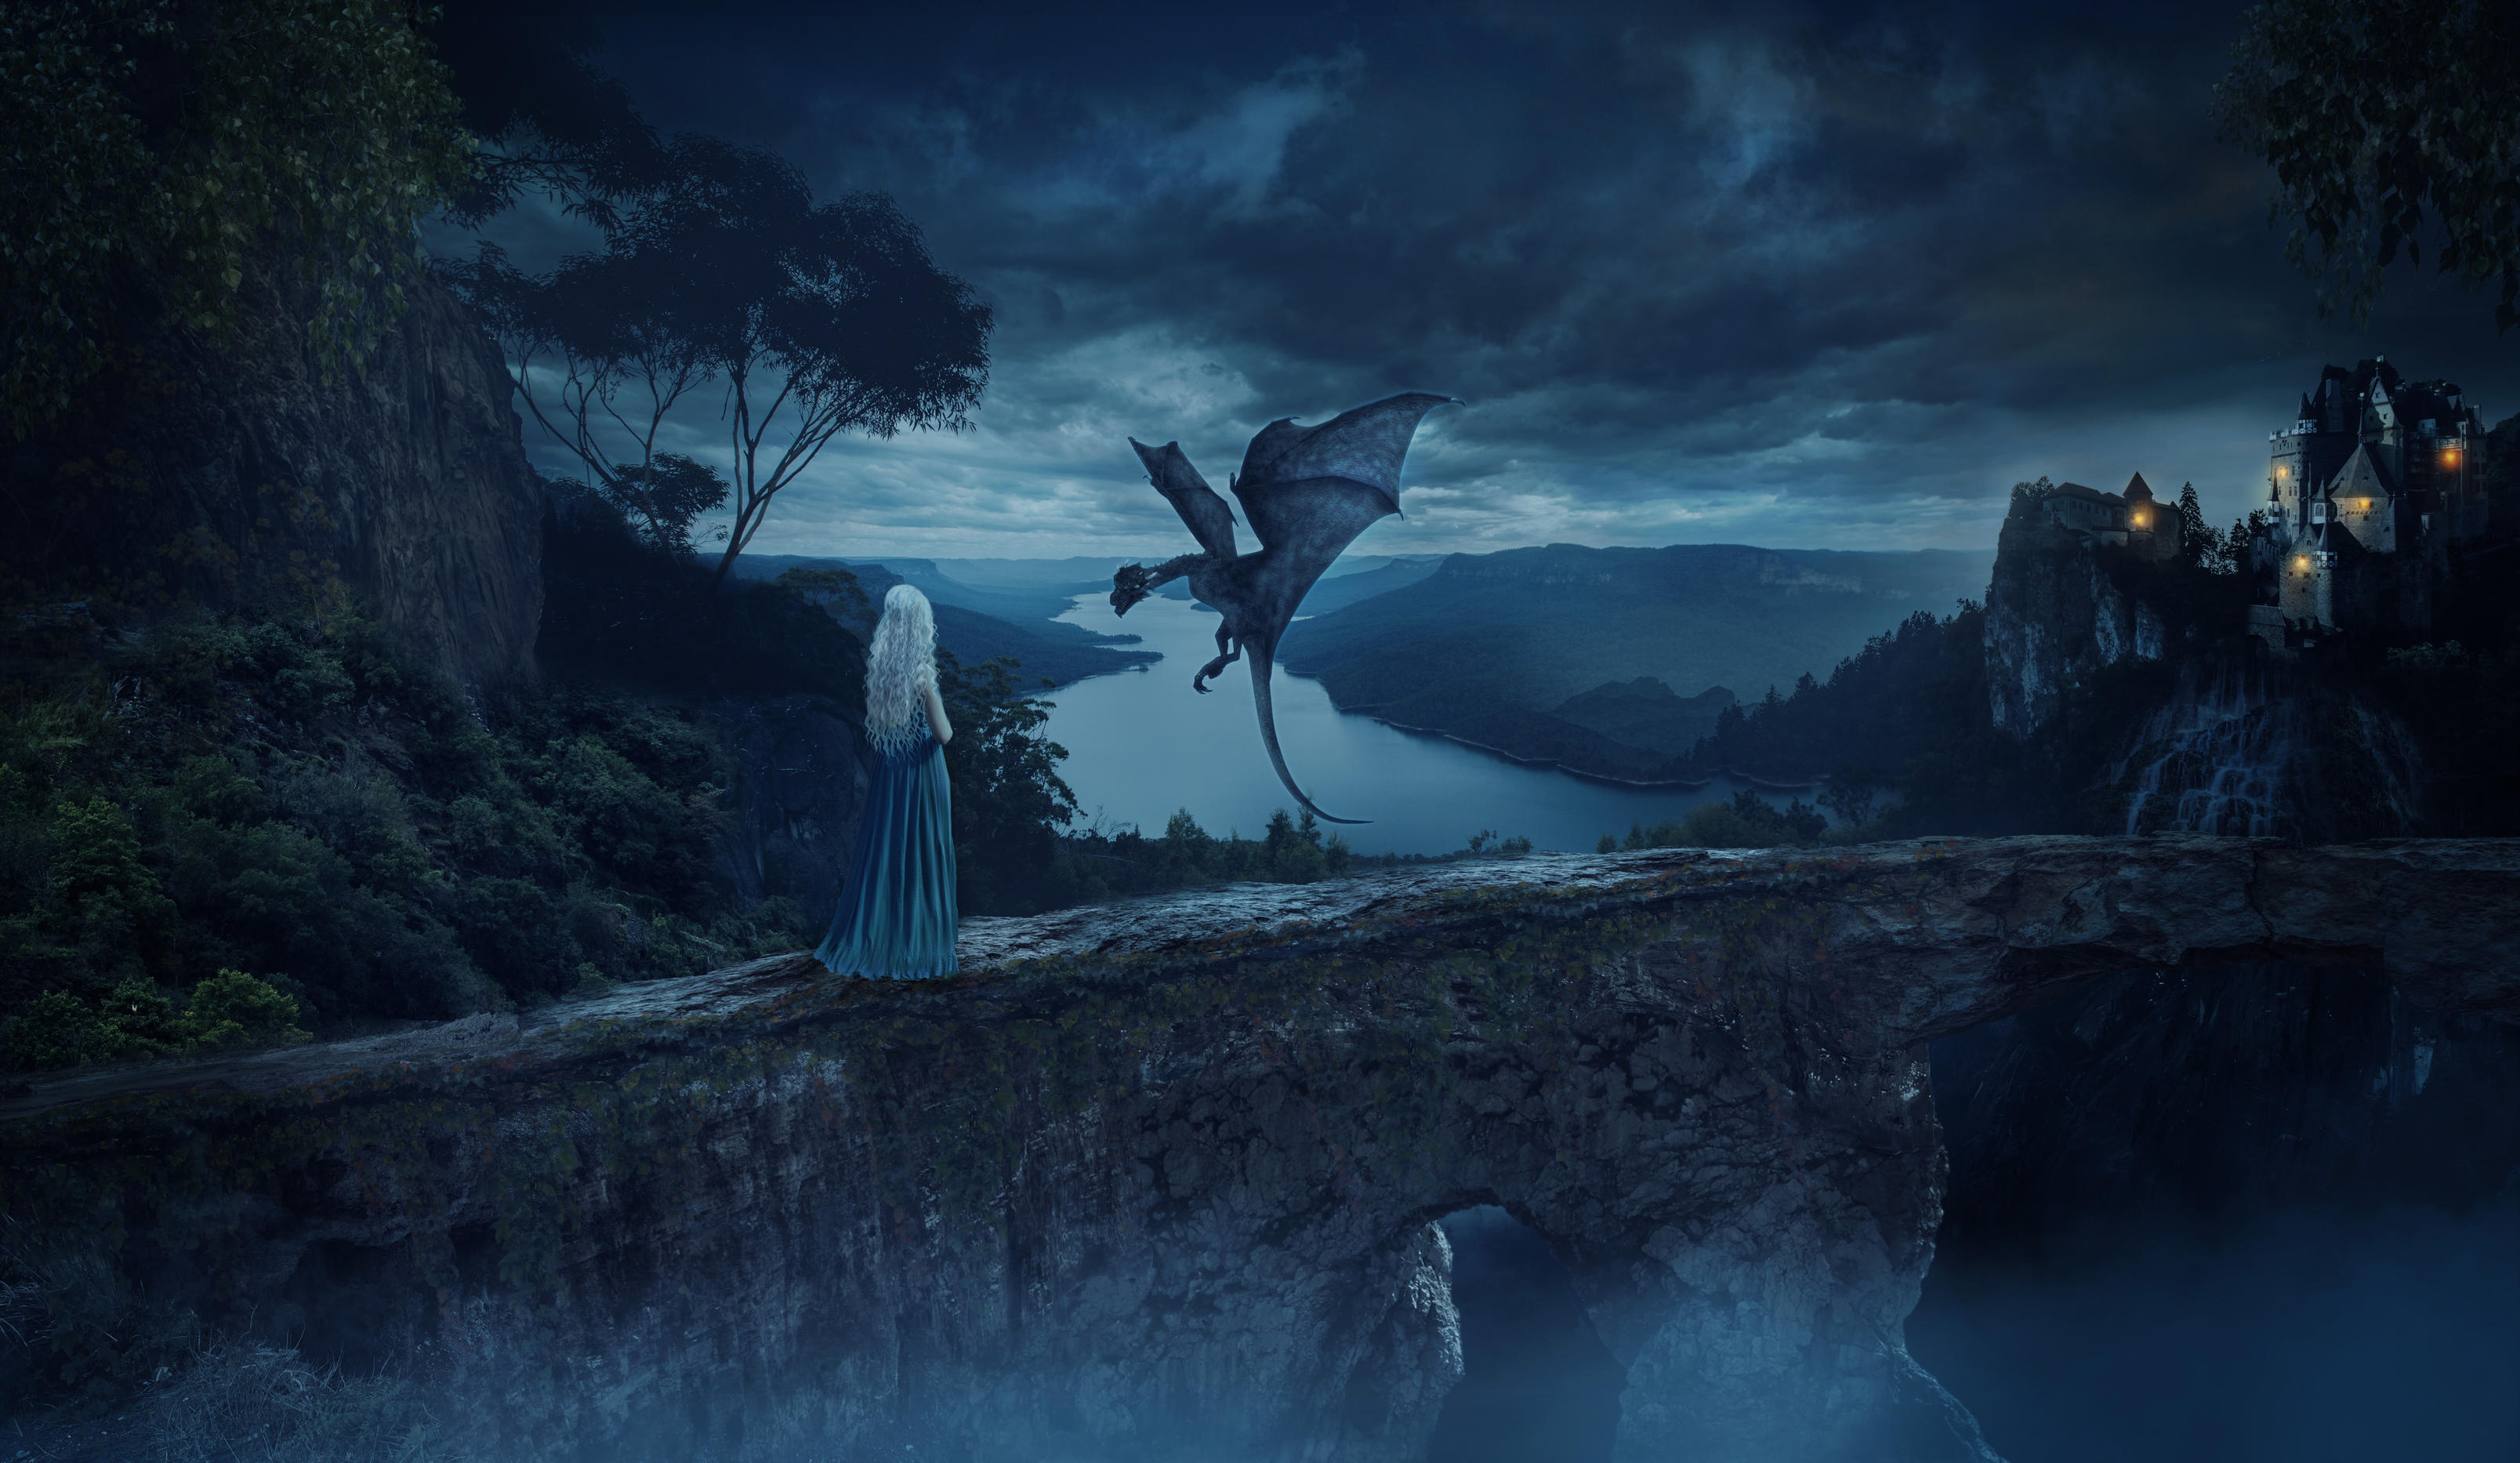 Dragons mother game of thrones hd tv shows 4k wallpapers - Tv series wallpaper 4k ...